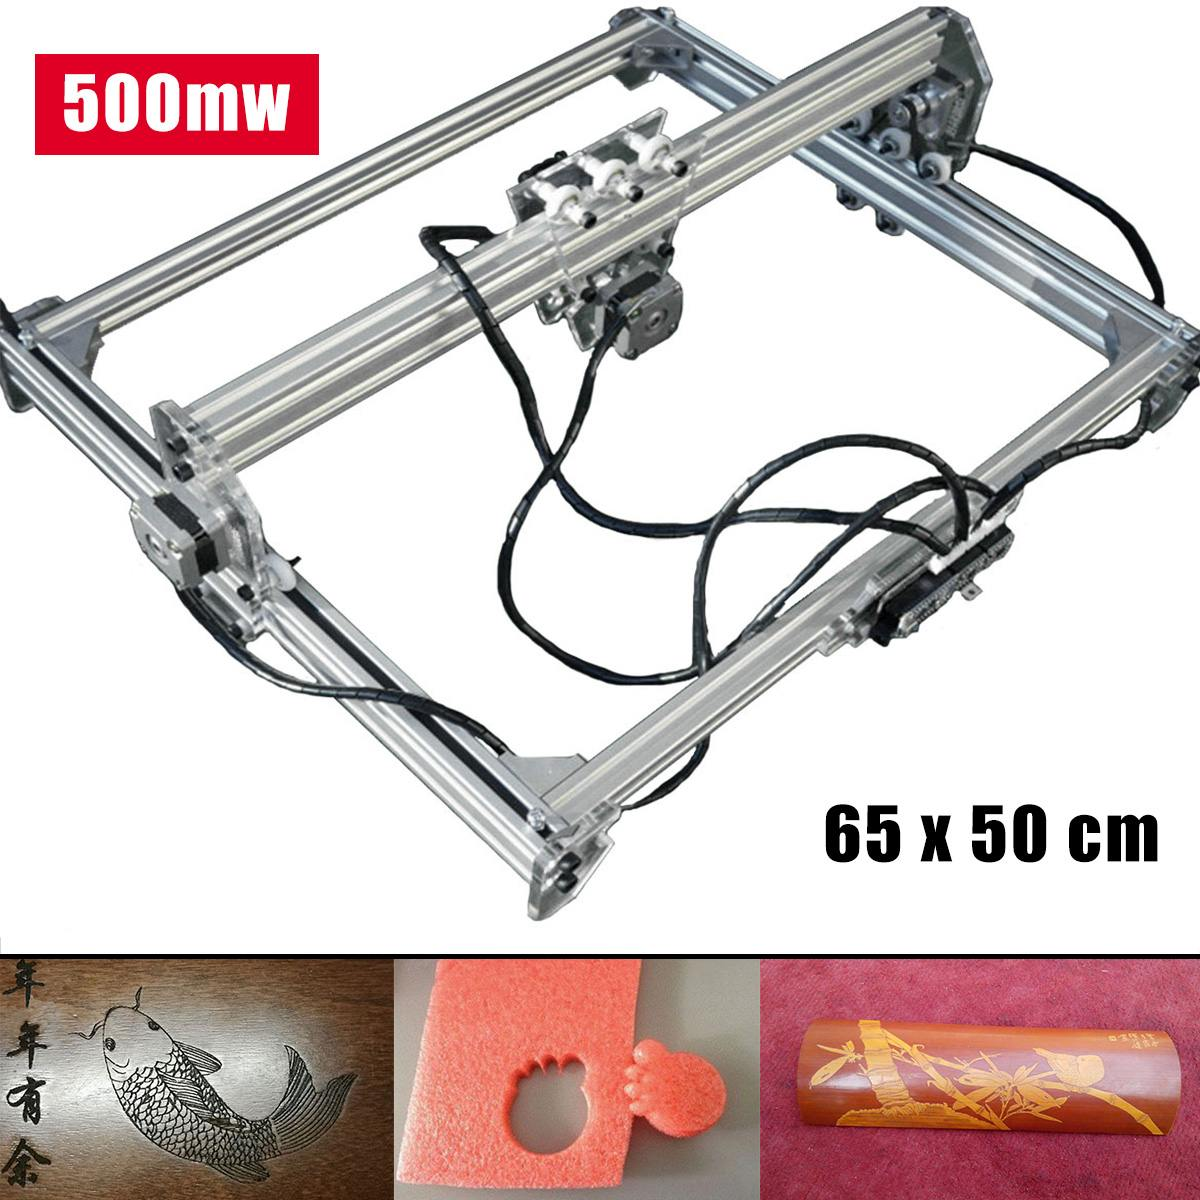 65x50cm 500mw DC 12V Laser Engraving Cutting Machine DIY Engraver Desktop CNC 2Axis Wood Router/Cutter/Printer For Marking Logo